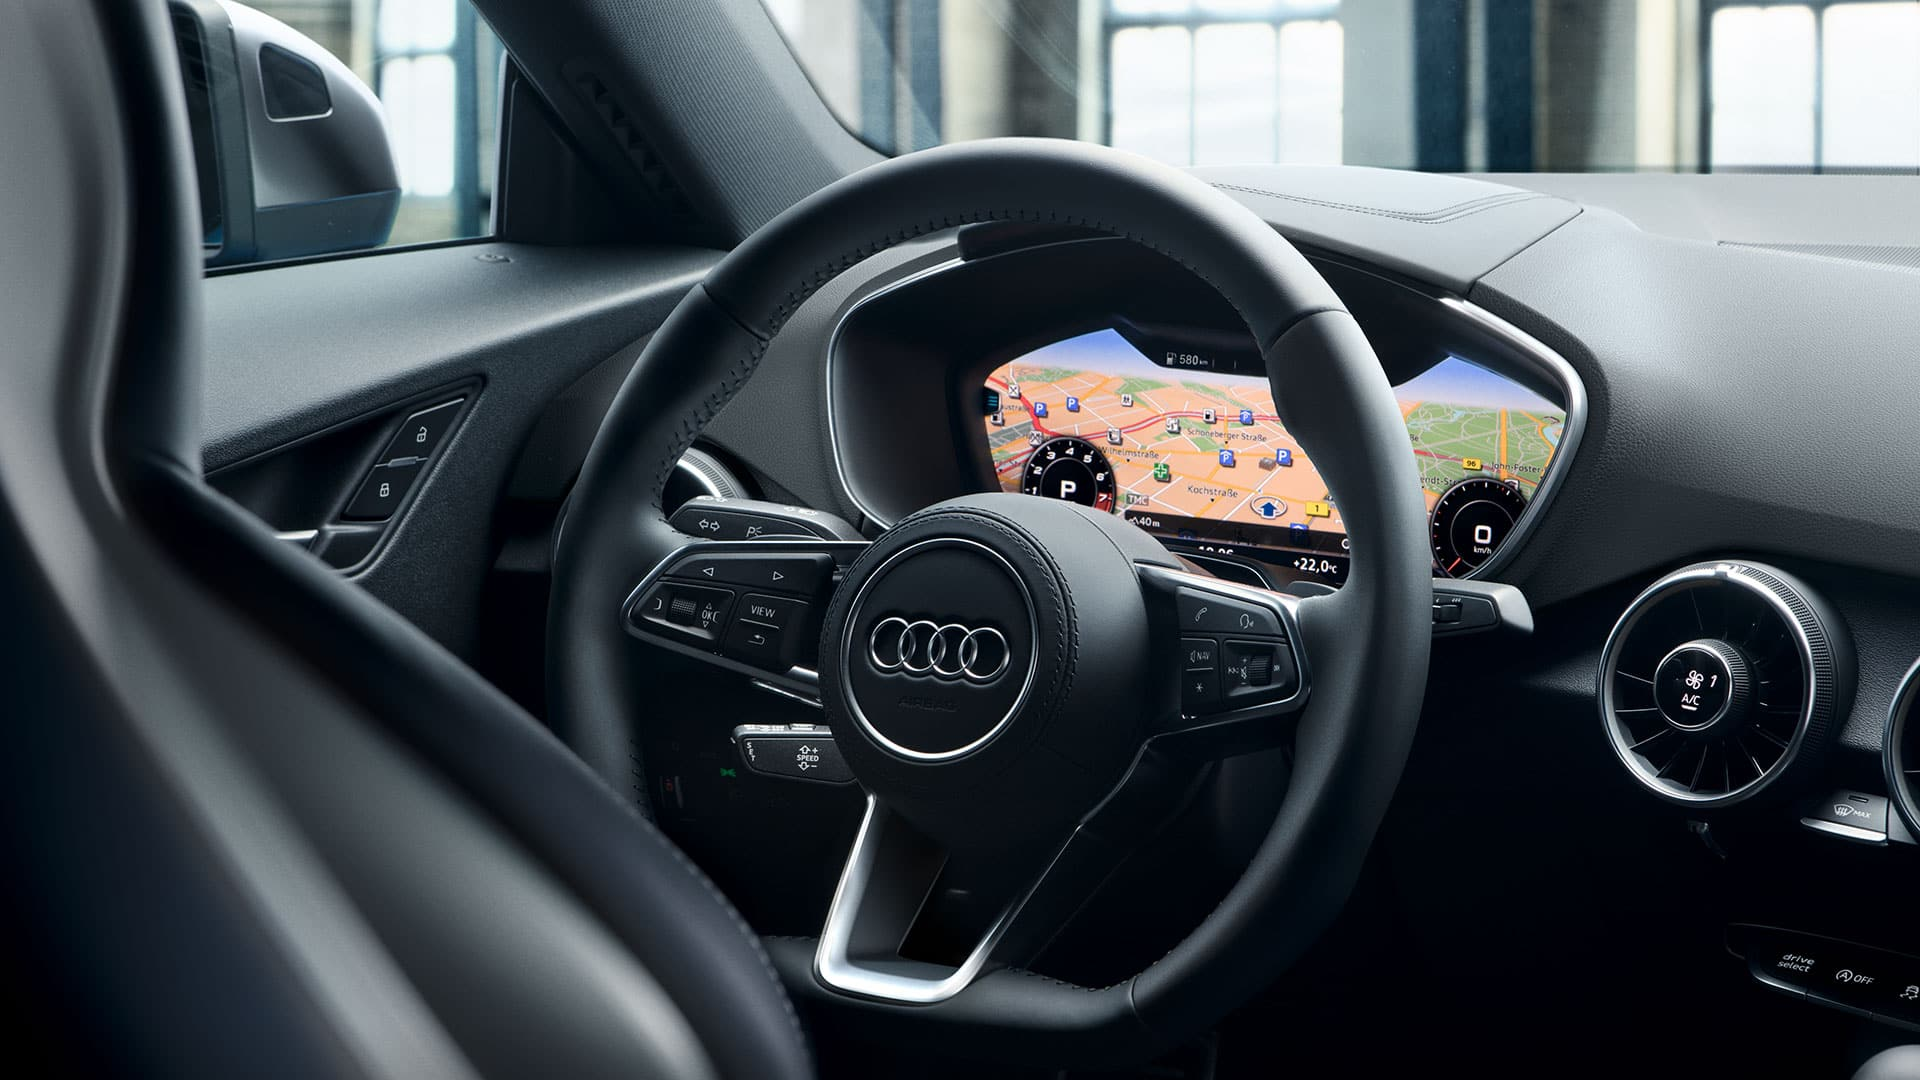 Audi virtual cockpit im TT Roadster